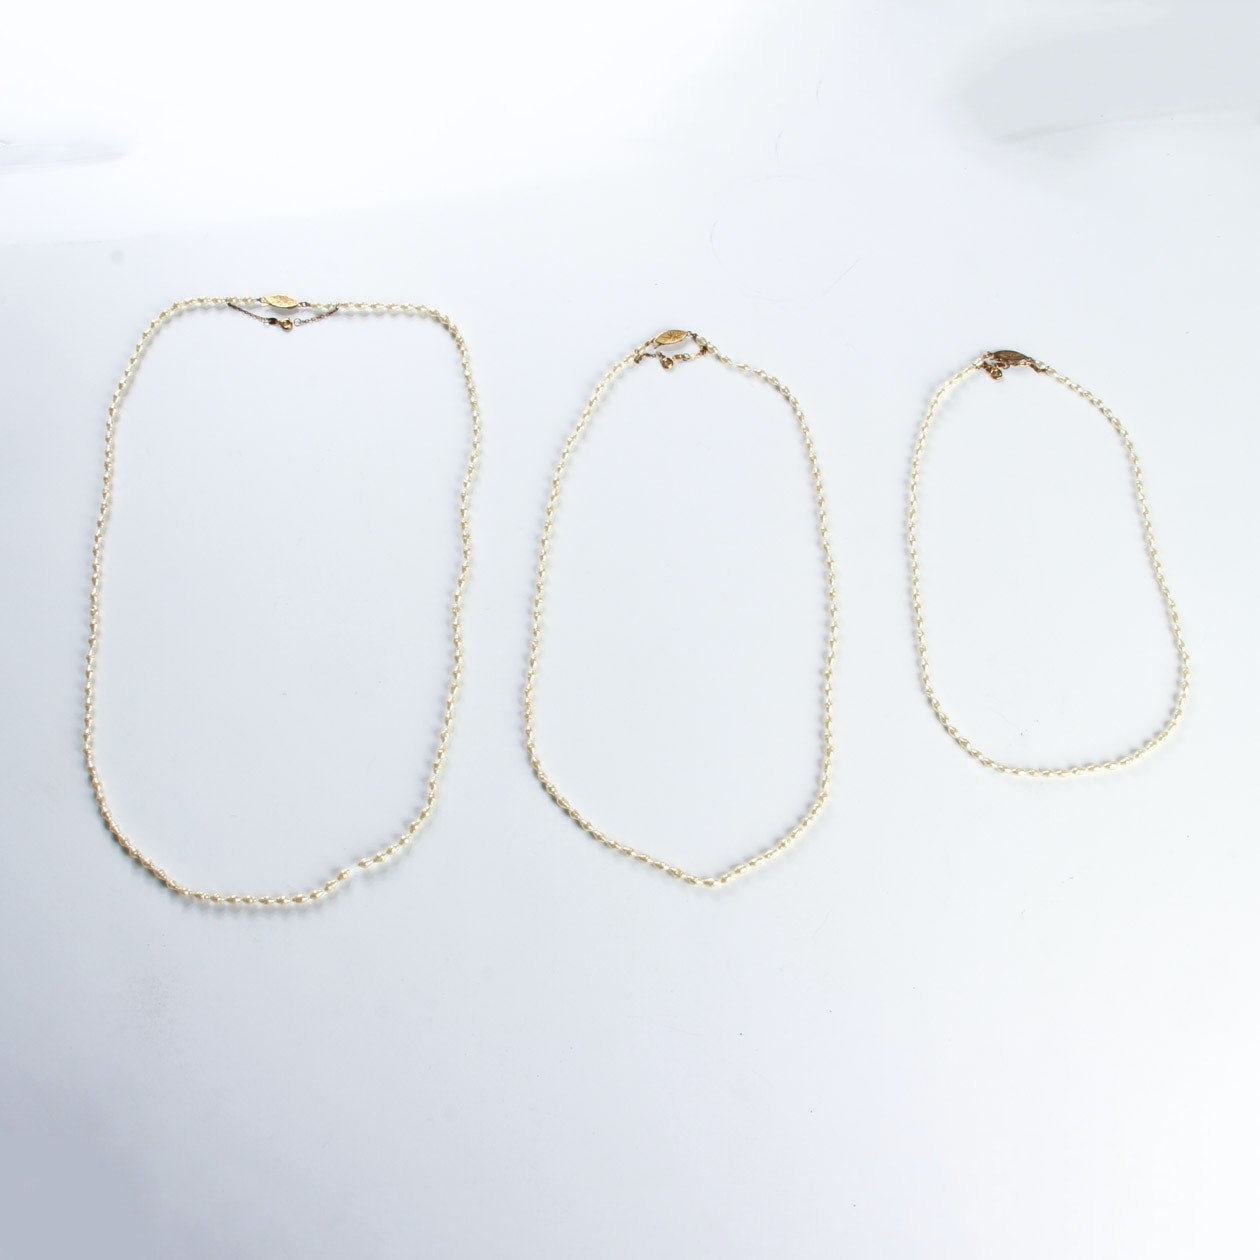 Three Vintage Freshwater Pearl Necklaces with Sterling Closures